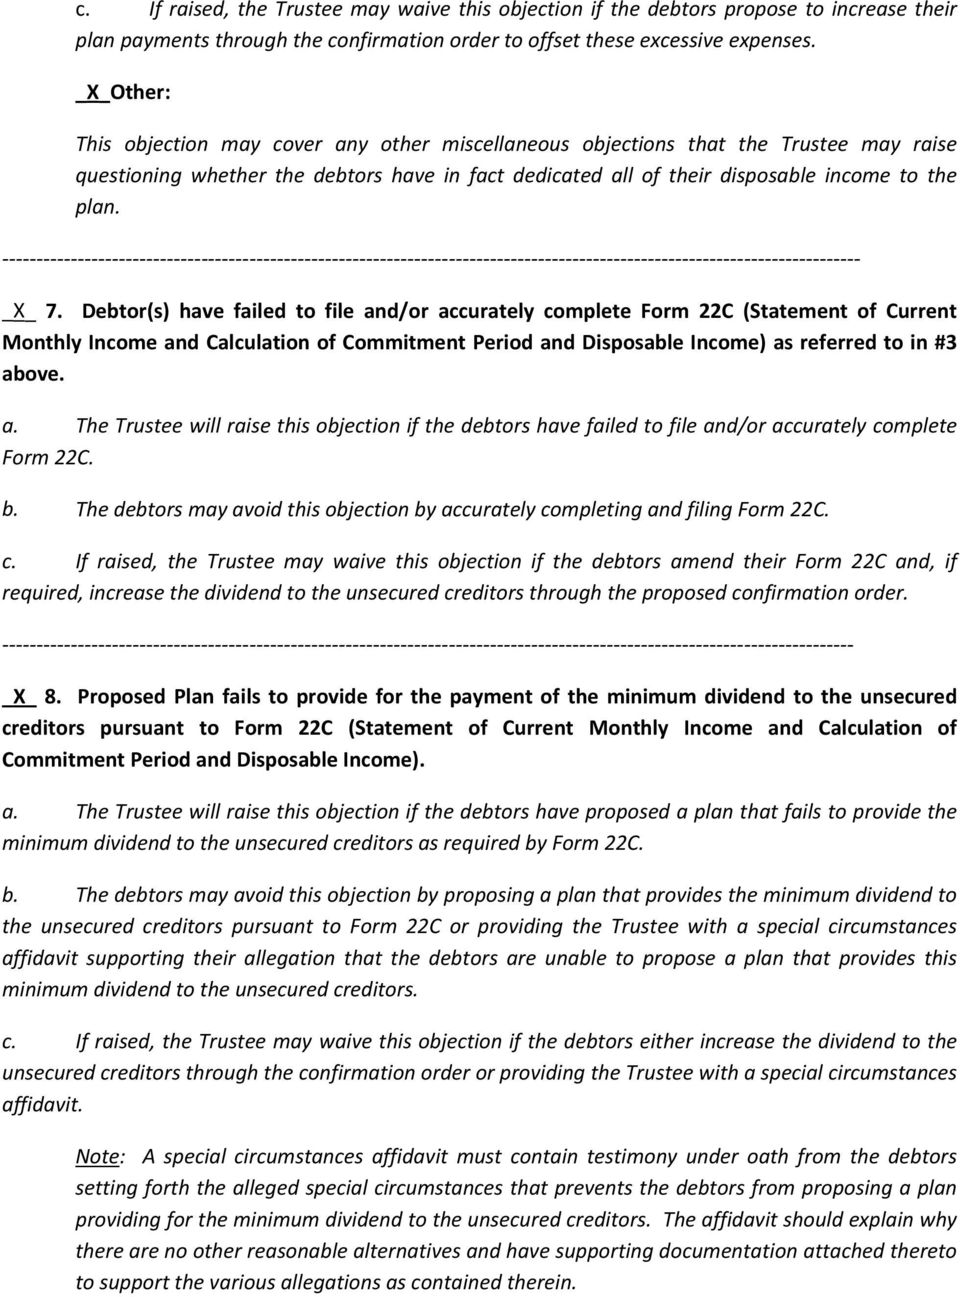 _X_ 7. Debtor(s) have failed to file and/or accurately complete Form 22C (Statement of Current Monthly Income and Calculation of Commitment Period and Disposable Income) as referred to in #3 above. a. The Trustee will raise this objection if the debtors have failed to file and/or accurately complete Form 22C.